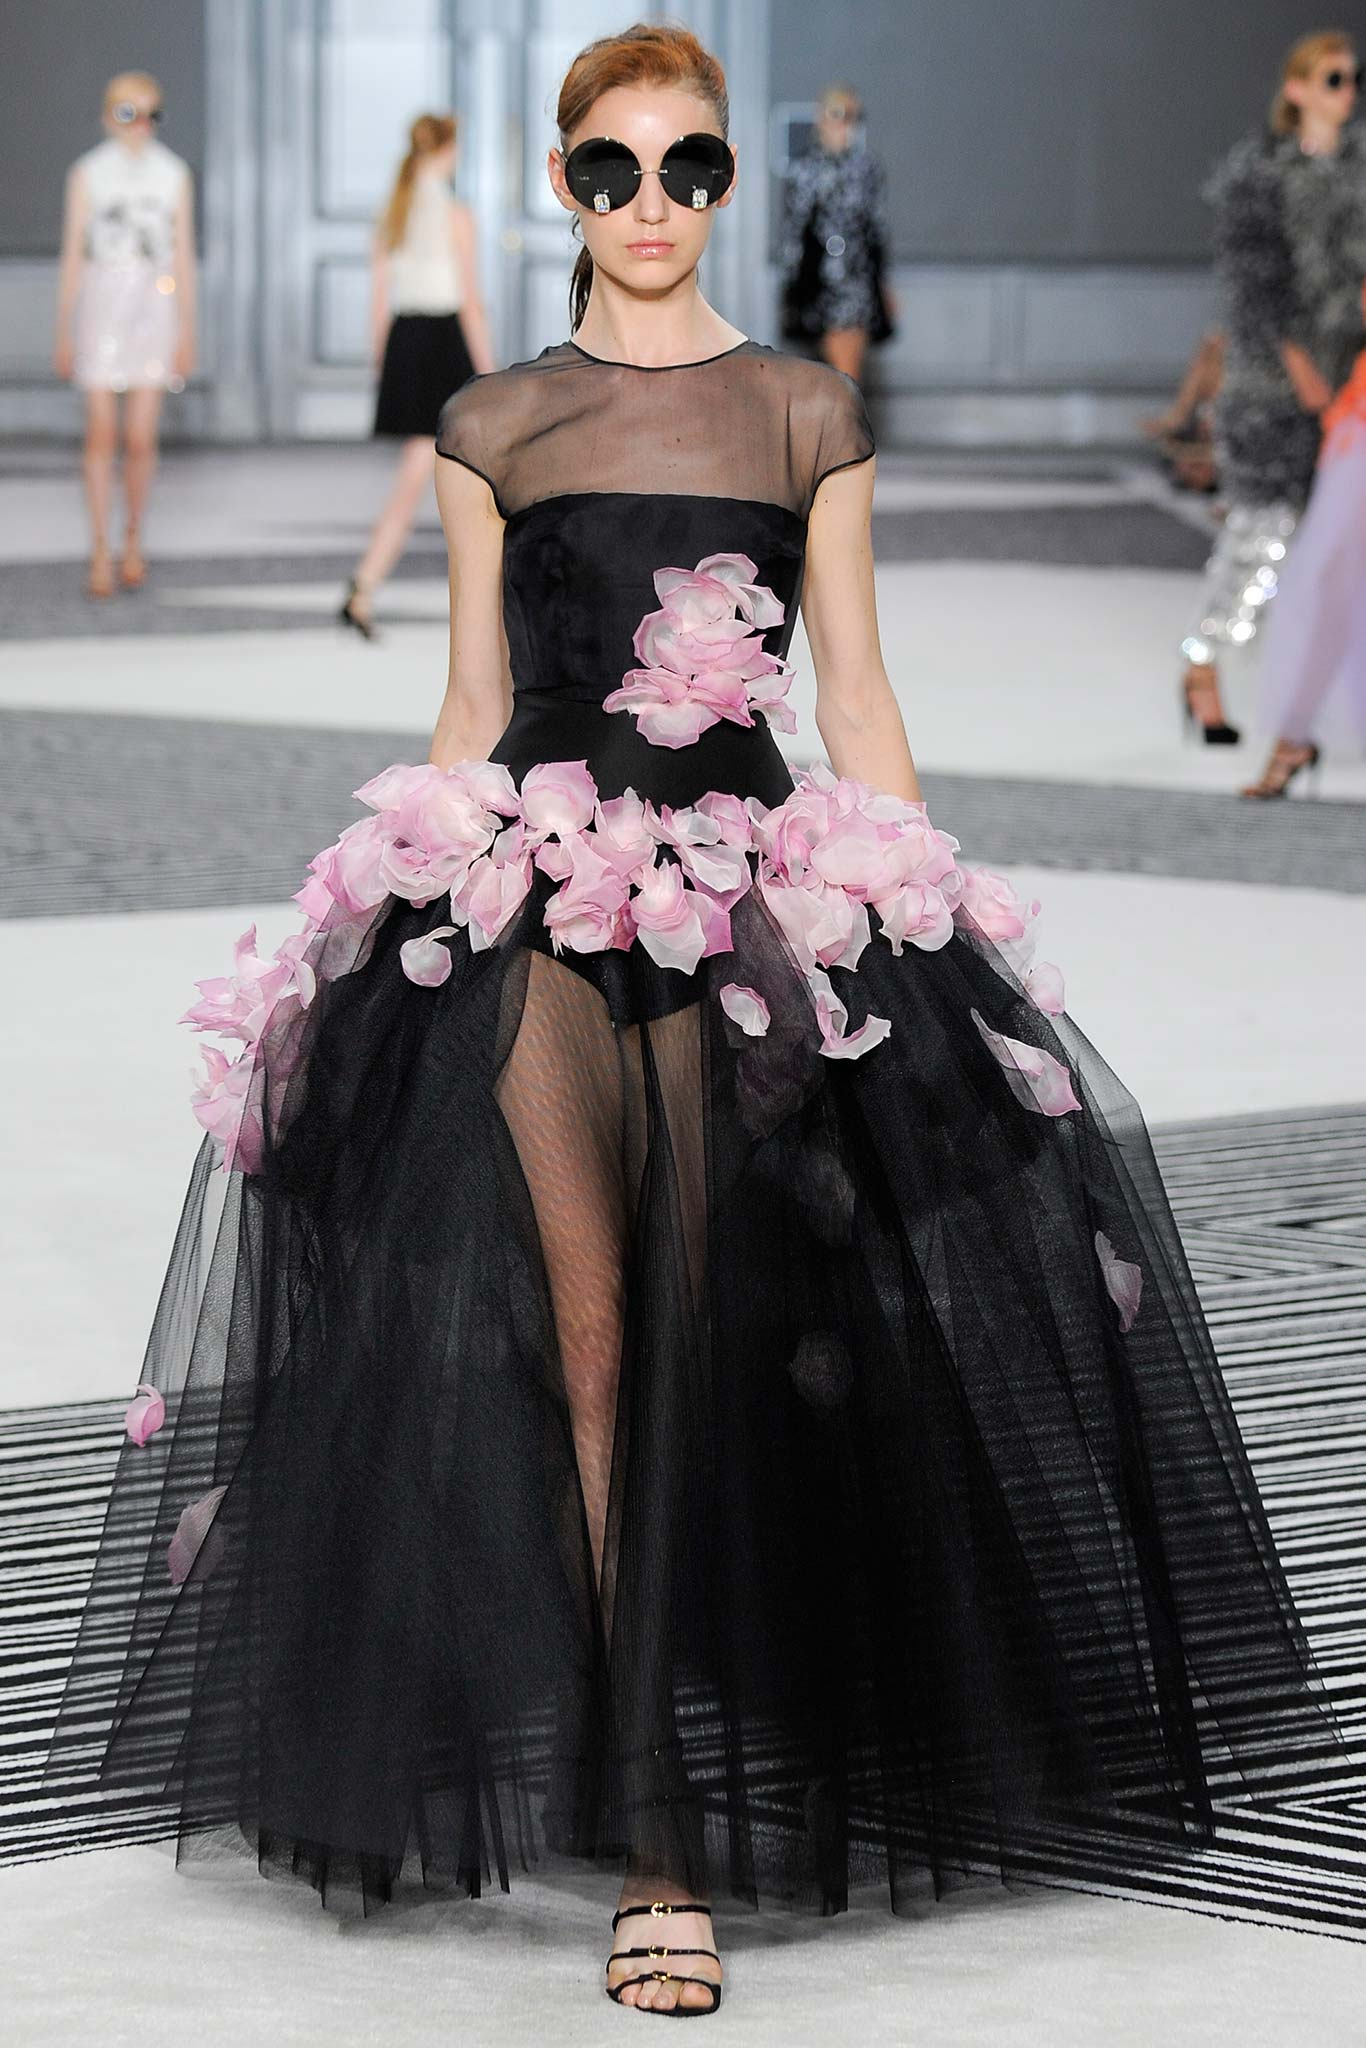 Diy Raining Men Costume: The Dreamiest Dresses From Haute Couture Fashion Week